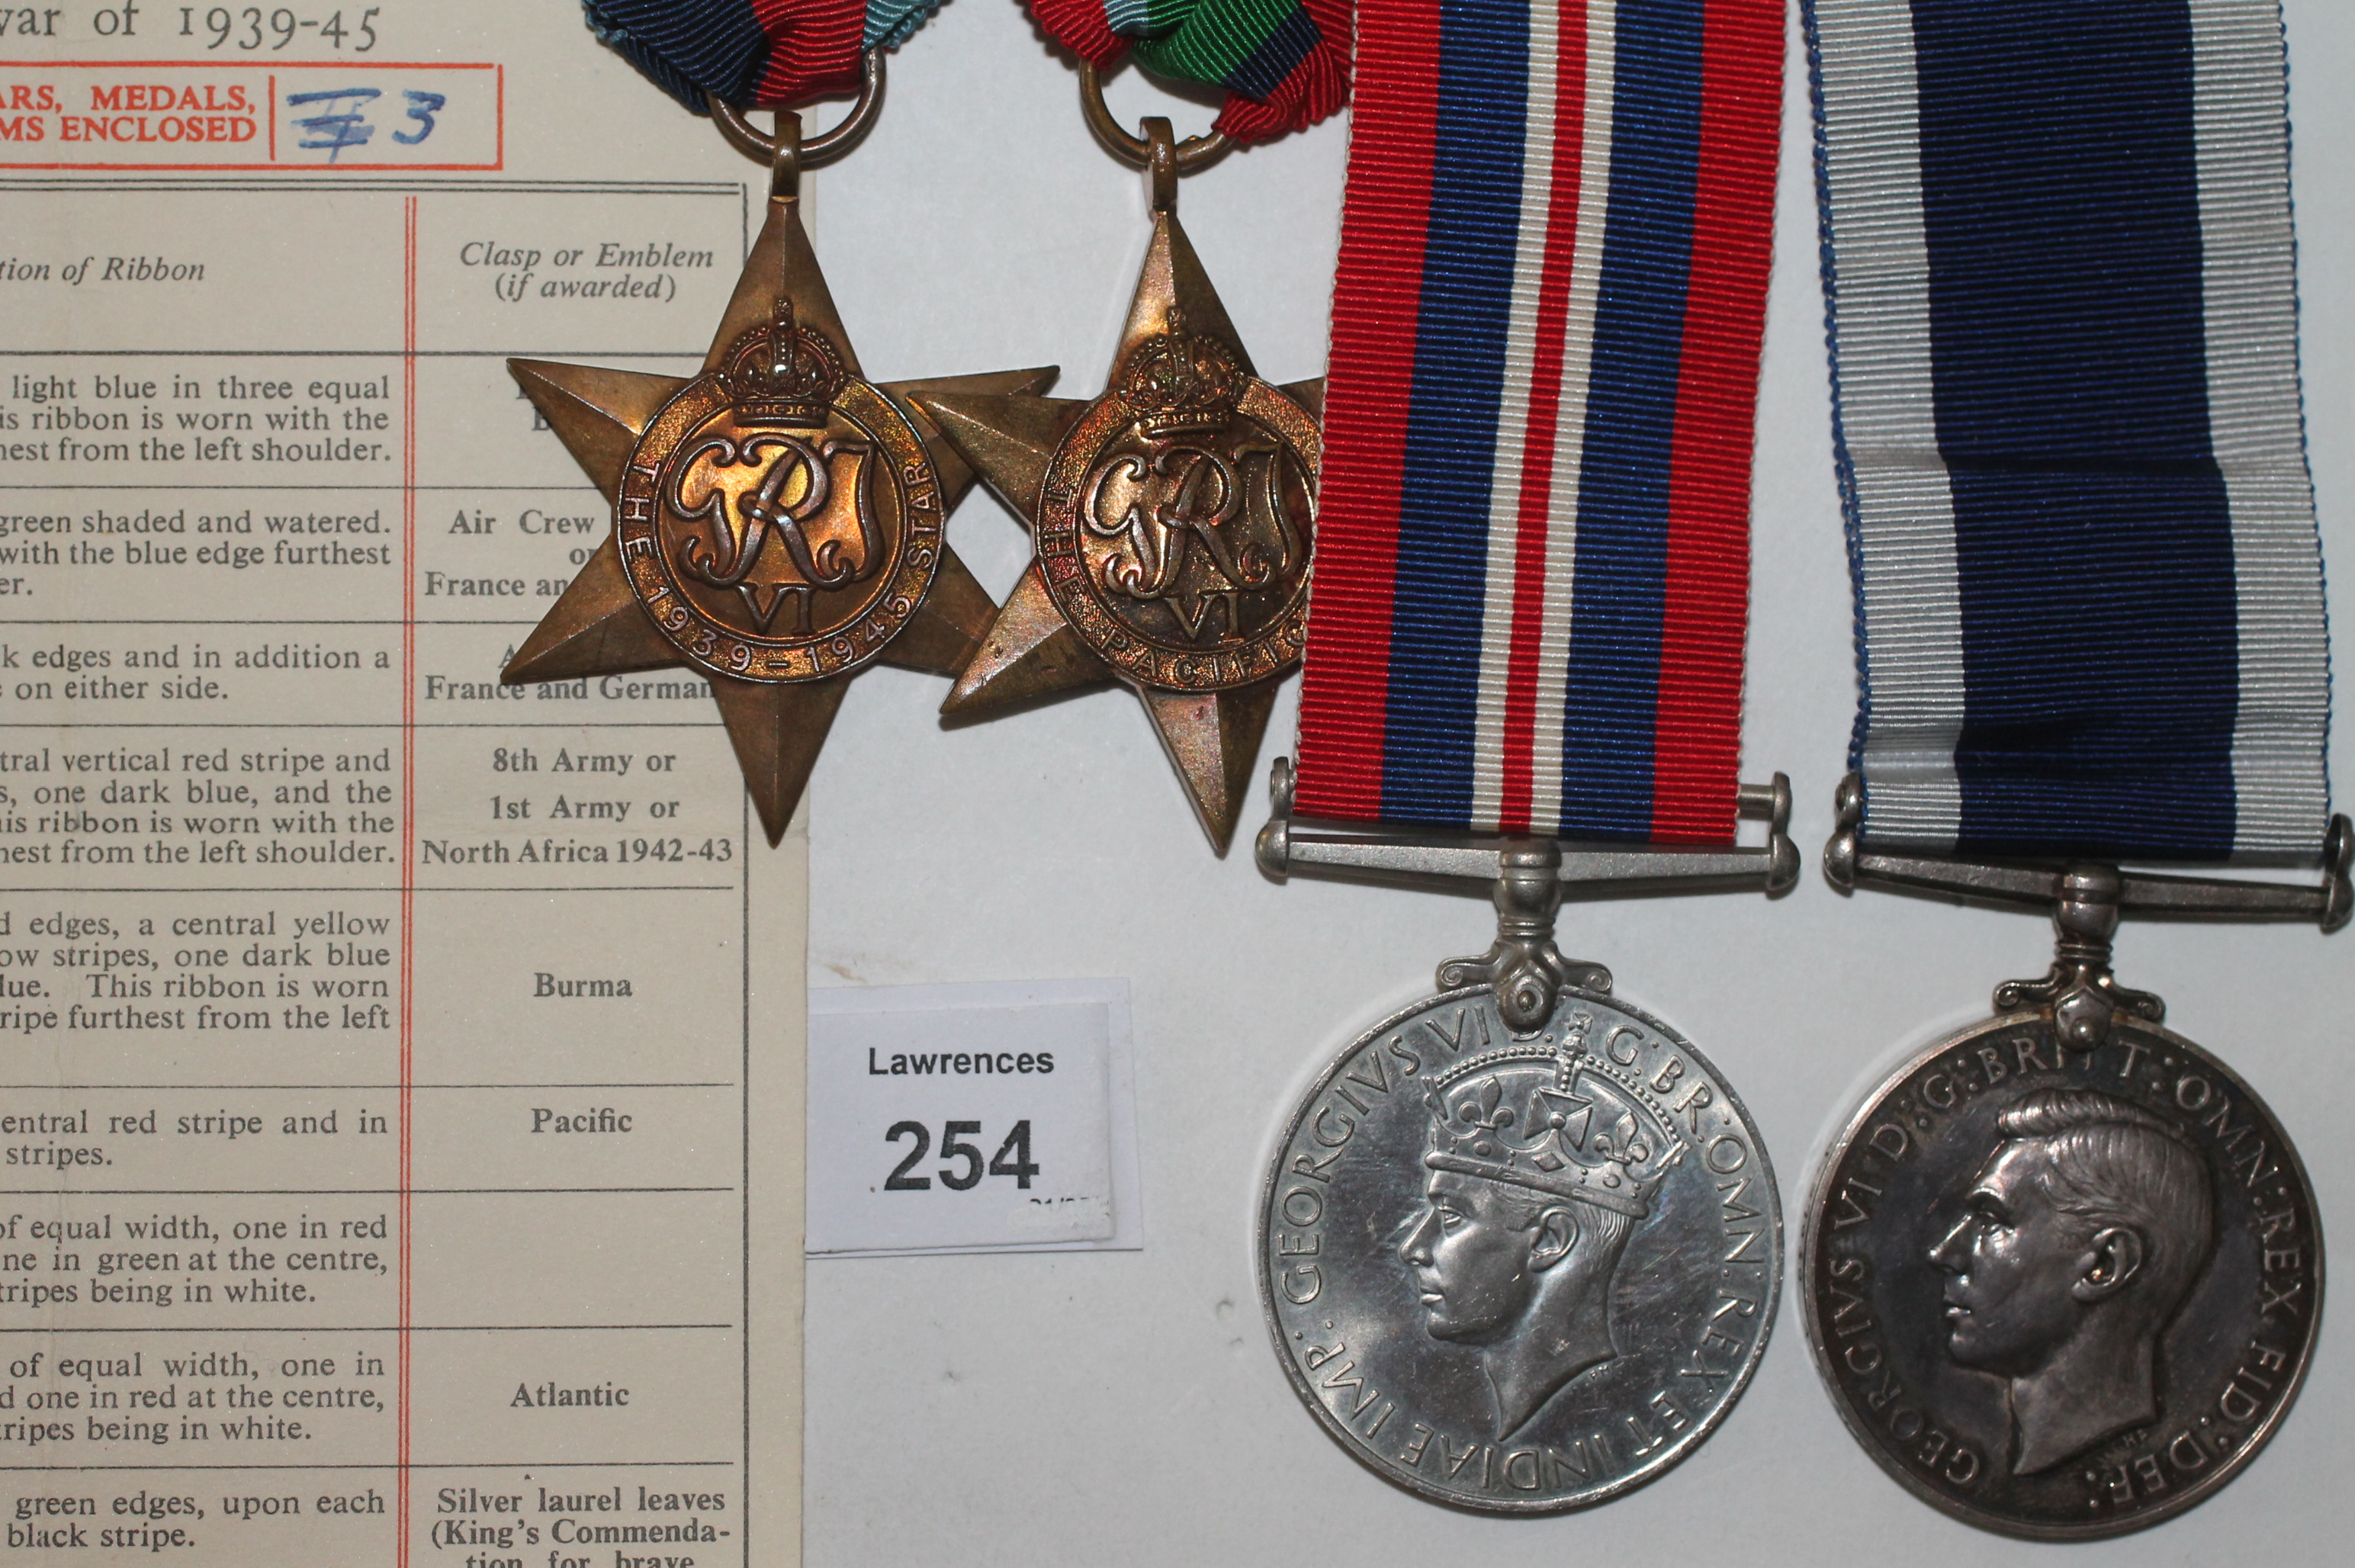 Lot 254 - A PACIFIC STAR-LSGC R NAVY POW GROUP OF FOUR MEDALS. A 1939/45 & Pacific Stars, War Medal and Long